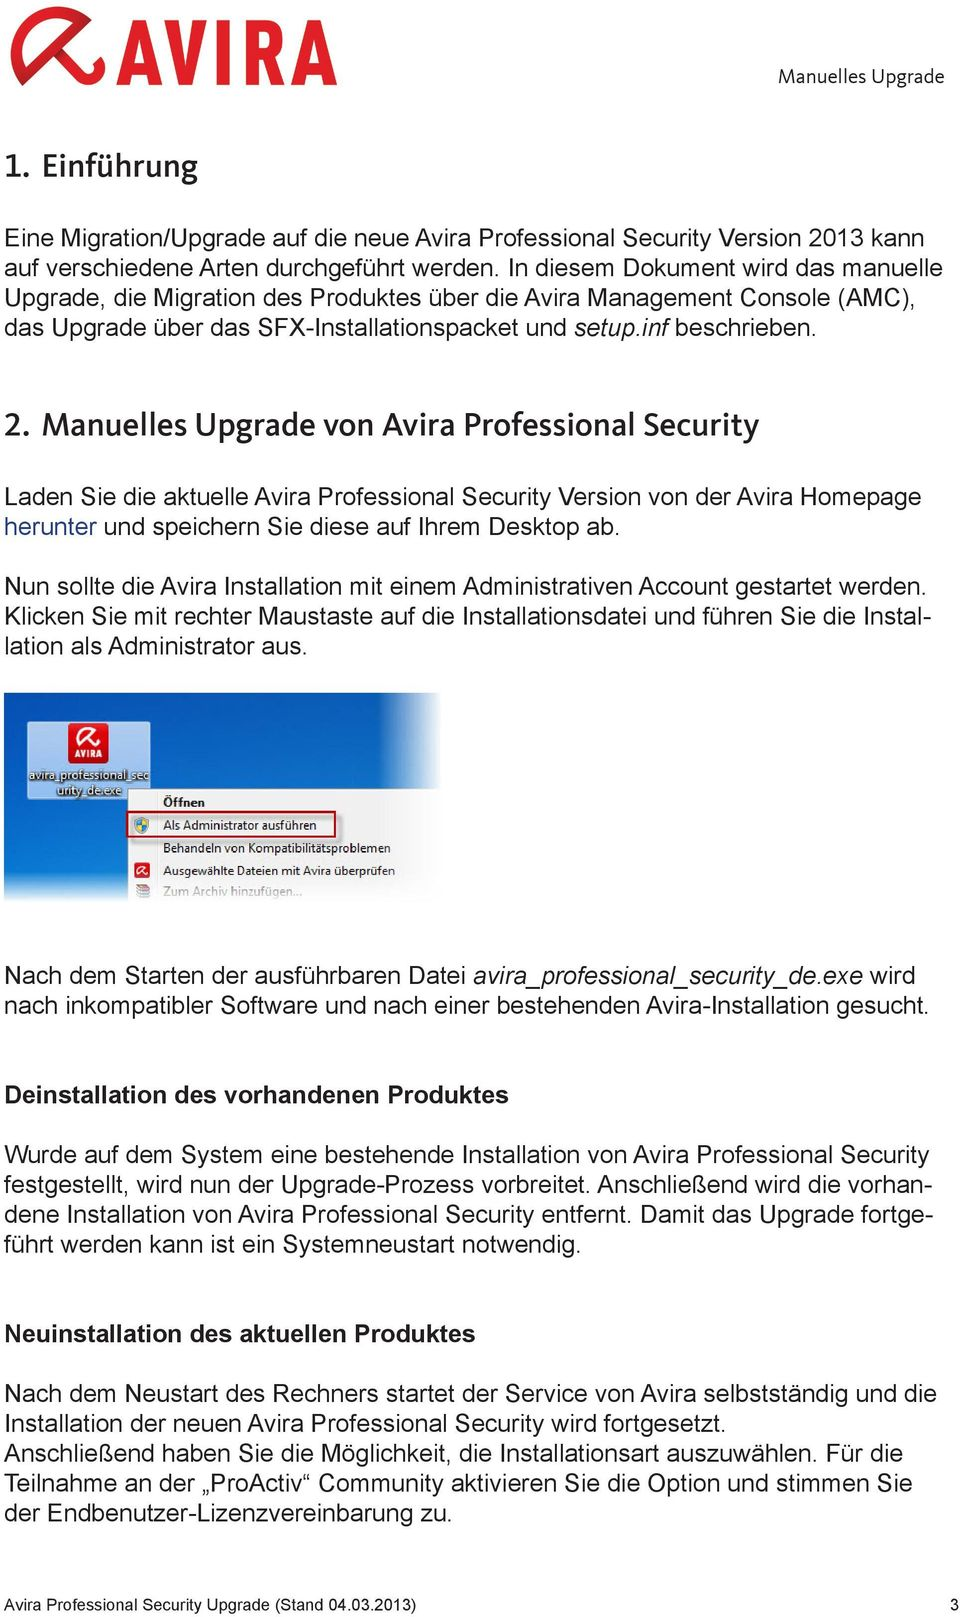 Manuelles Upgrade von Avira Professional Security Laden Sie die aktuelle Avira Professional Security Version von der Avira Homepage herunter und speichern Sie diese auf Ihrem Desktop ab.